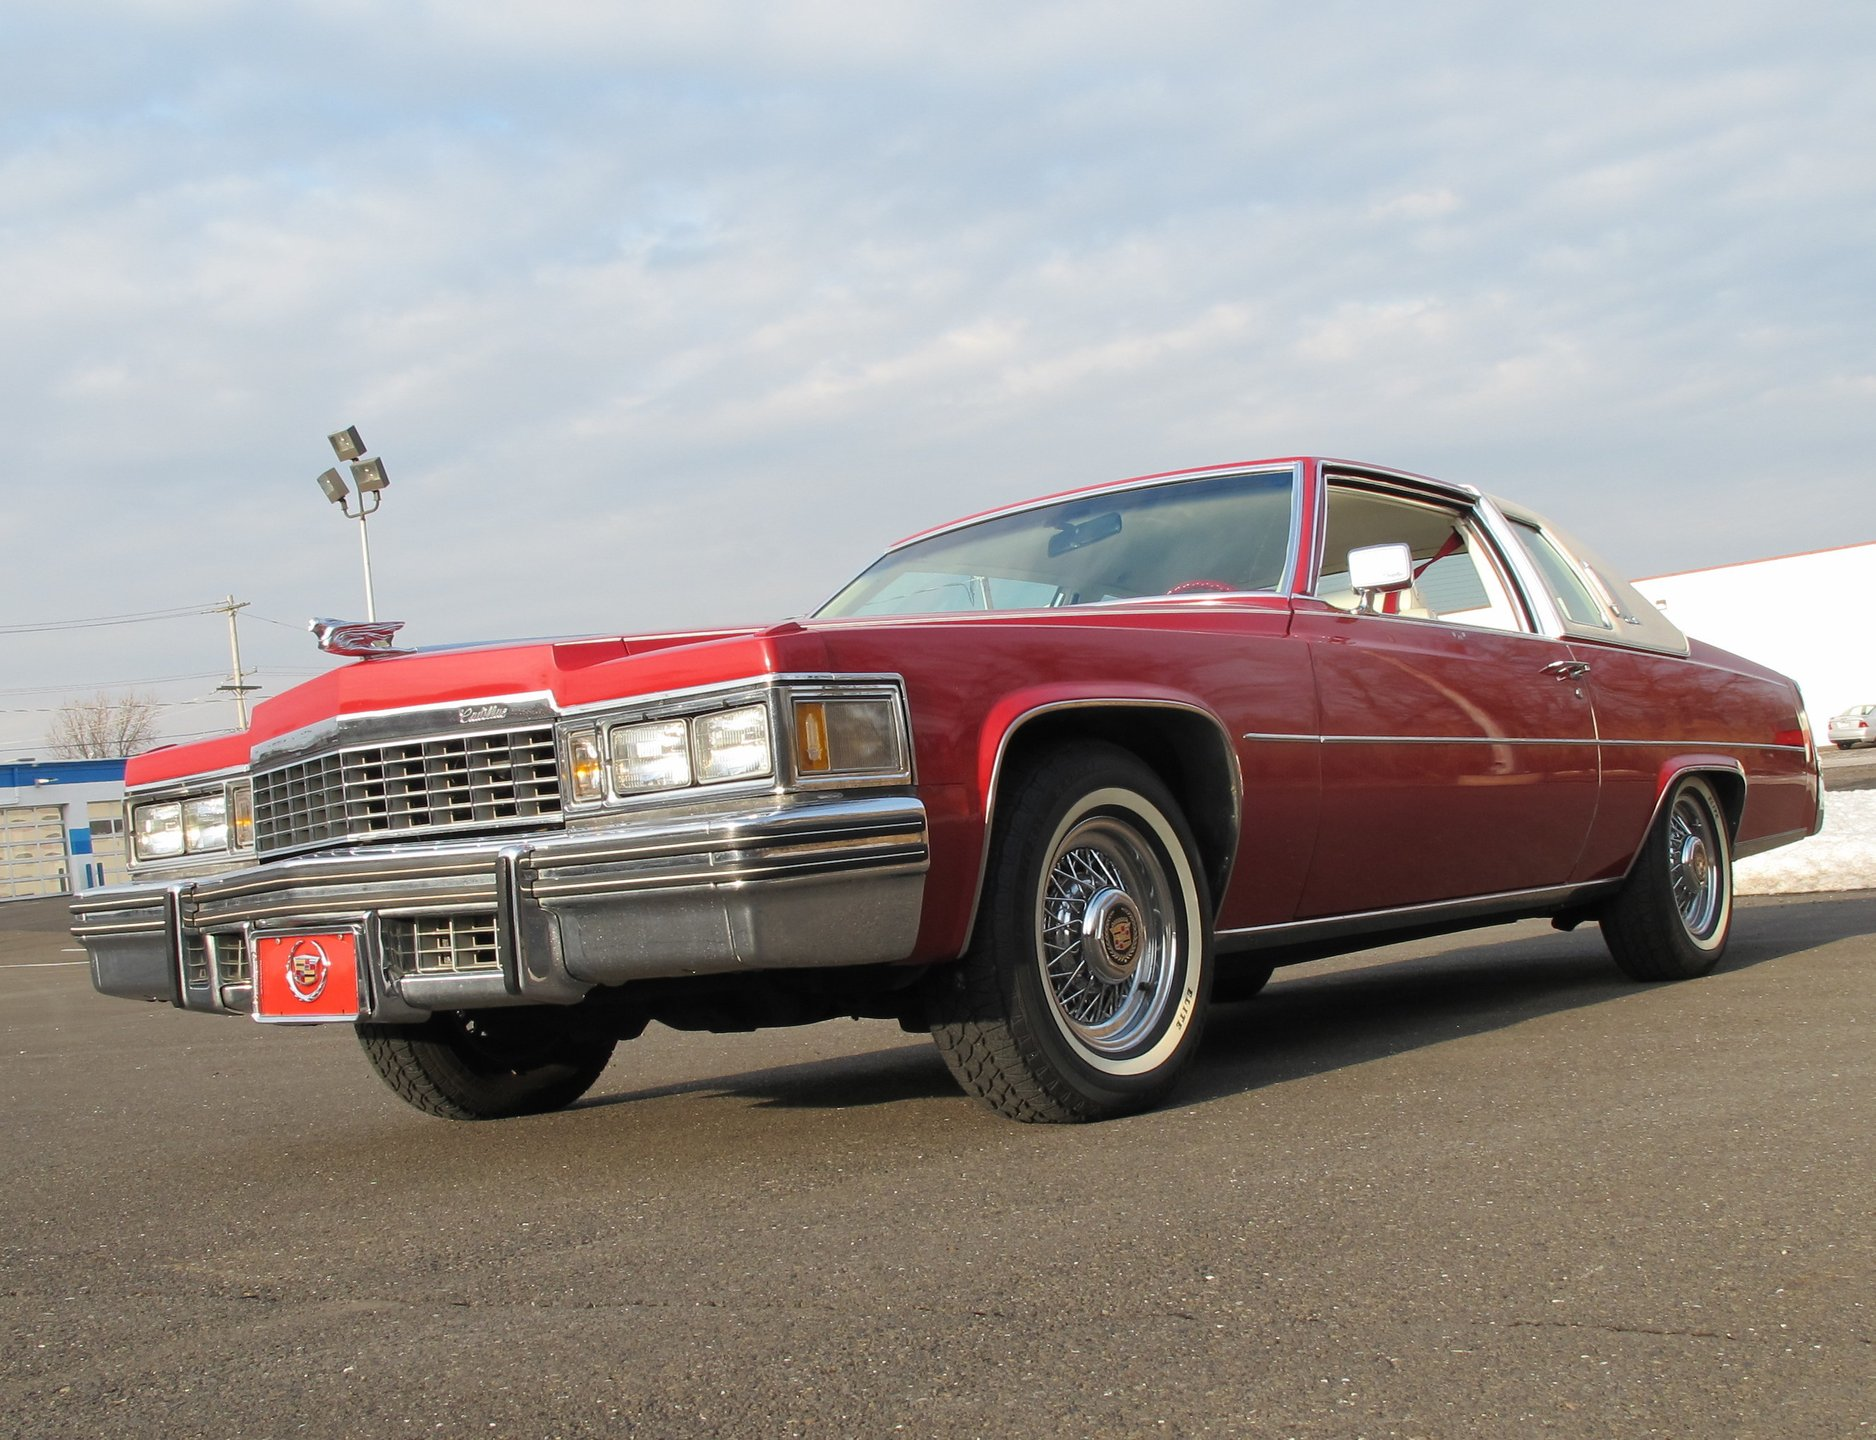 1977 Cadillac Coupe DeVille | OLD FORGE MOTORCARS INC